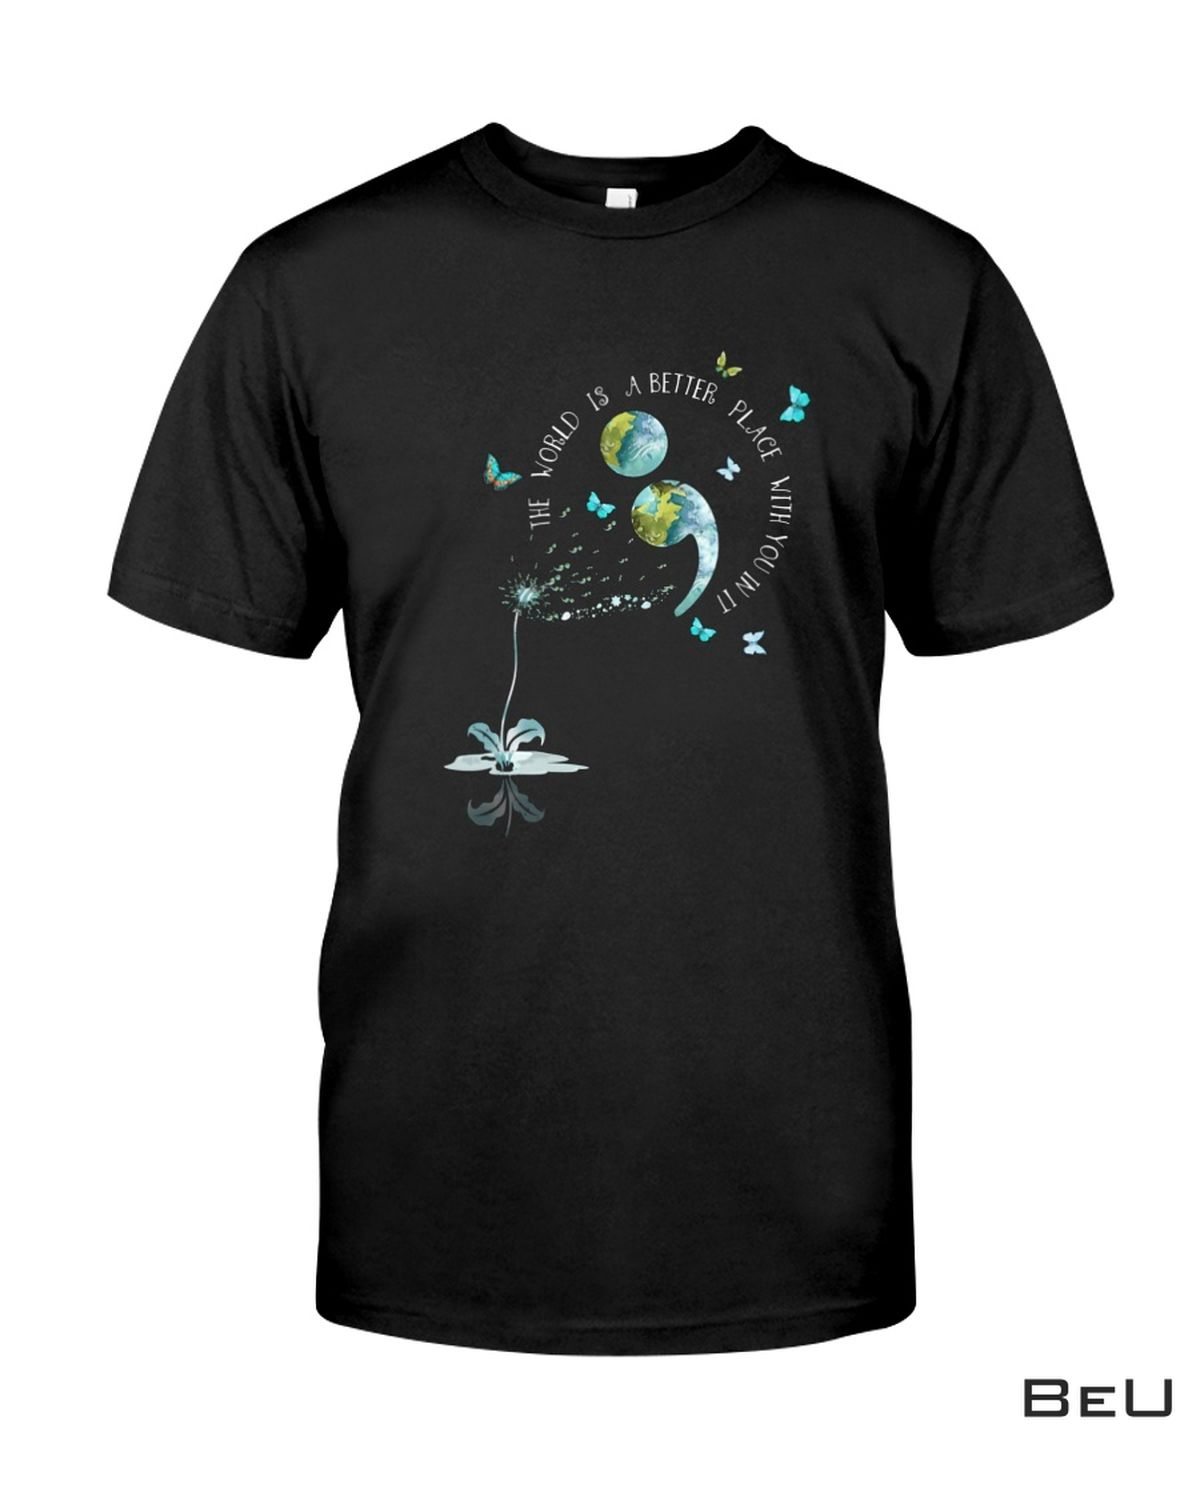 The World Is Better Place With You In It Shirt, hoodie, tank top